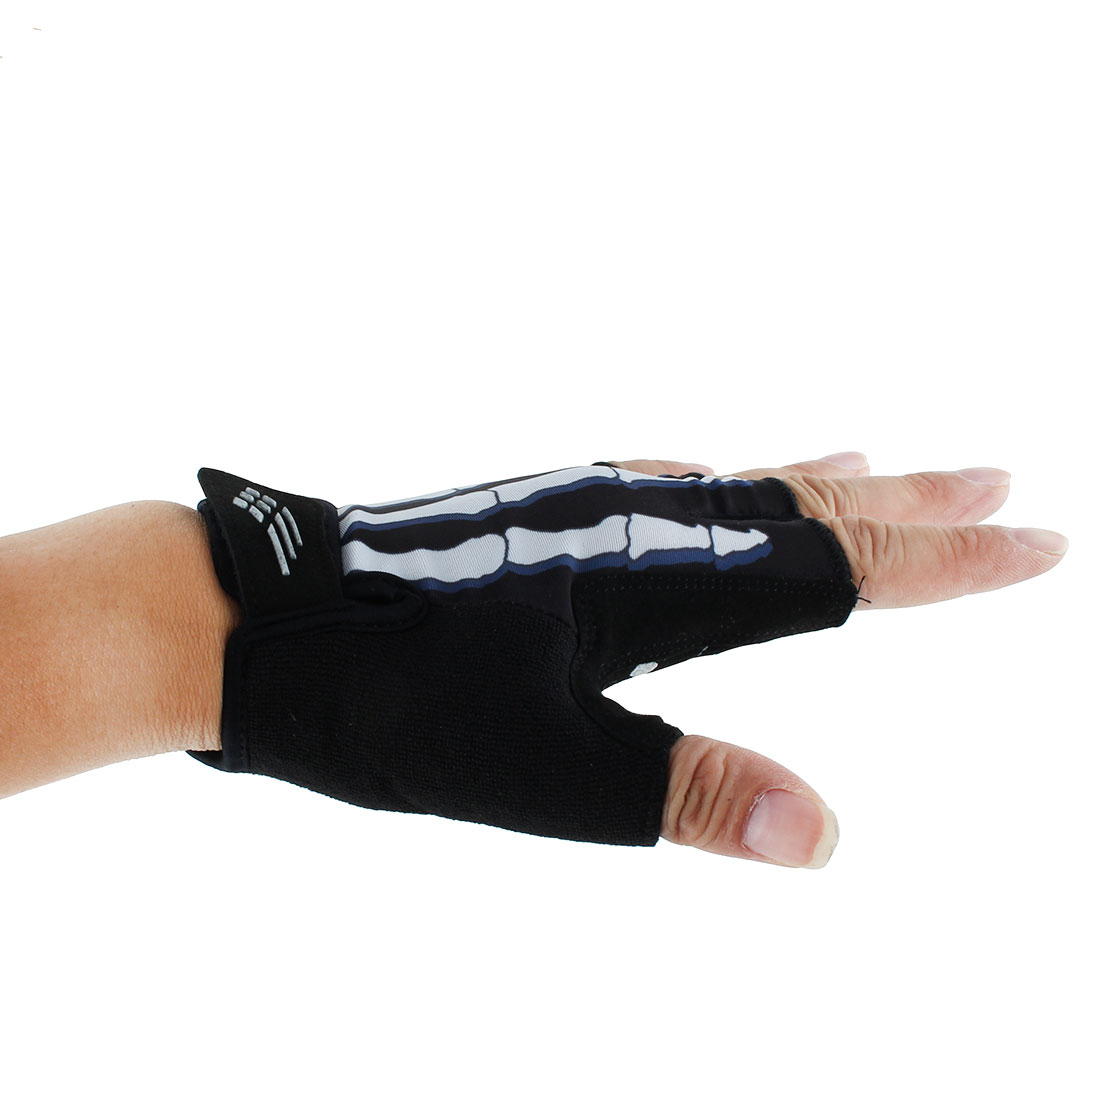 XINTOWN Authorized Cycling Outdoor Exercise Riding Half Finger Gloves #7 L Pair - image 2 of 4